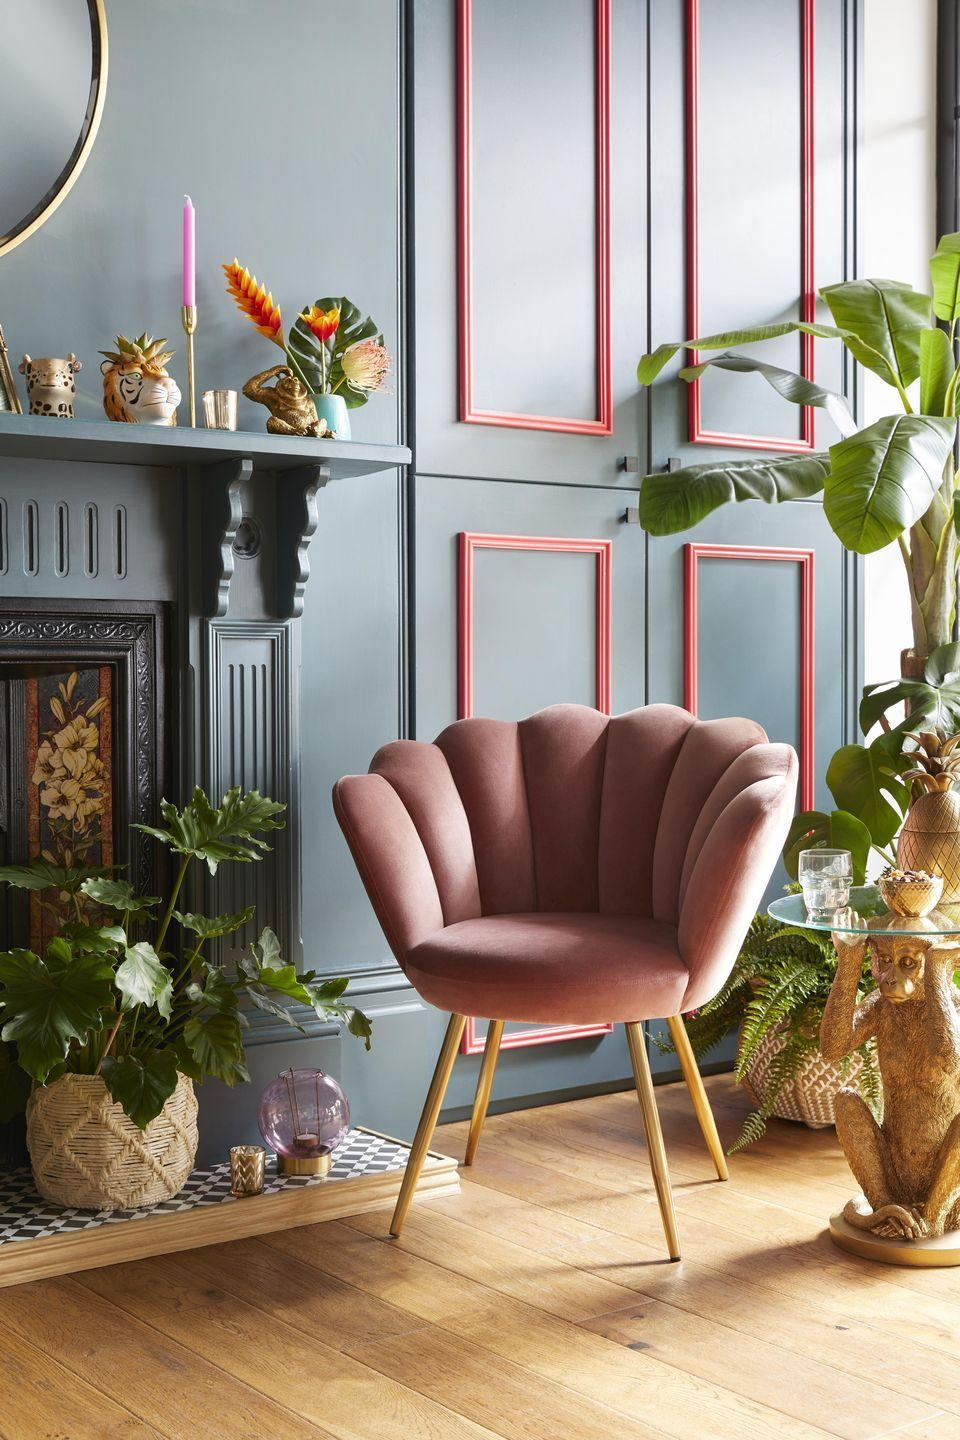 """<p>Create a striking look in your <a href=""""https://www.housebeautiful.com/uk/decorate/living-room/a35111240/living-room-lighting-ideas/"""" rel=""""nofollow noopener"""" target=""""_blank"""" data-ylk=""""slk:living room"""" class=""""link rapid-noclick-resp"""">living room</a>, dining room or study with Dunelm's swoon-worthy velvet chair (£149). Snuggly and sophisticated, it will bring an elegant feel to your space. </p><p><a class=""""link rapid-noclick-resp"""" href=""""https://go.redirectingat.com?id=127X1599956&url=https%3A%2F%2Fwww.dunelm.com%2Fproduct%2Fvivian-velvet-cocktail-chair-rose-1000157999&sref=https%3A%2F%2Fwww.housebeautiful.com%2Fuk%2Flifestyle%2Fshopping%2Fg35333392%2Fdunelm-spring-summer-homeware%2F"""" rel=""""nofollow noopener"""" target=""""_blank"""" data-ylk=""""slk:BUY NOW, £149"""">BUY NOW, £149</a></p><p><strong>READ MORE</strong>: <a href=""""https://www.housebeautiful.com/uk/decorate/g32597929/best-velvet-armchair/"""" rel=""""nofollow noopener"""" target=""""_blank"""" data-ylk=""""slk:17 velvet armchairs for a chic and contemporary look"""" class=""""link rapid-noclick-resp"""">17 velvet armchairs for a chic and contemporary look</a></p>"""